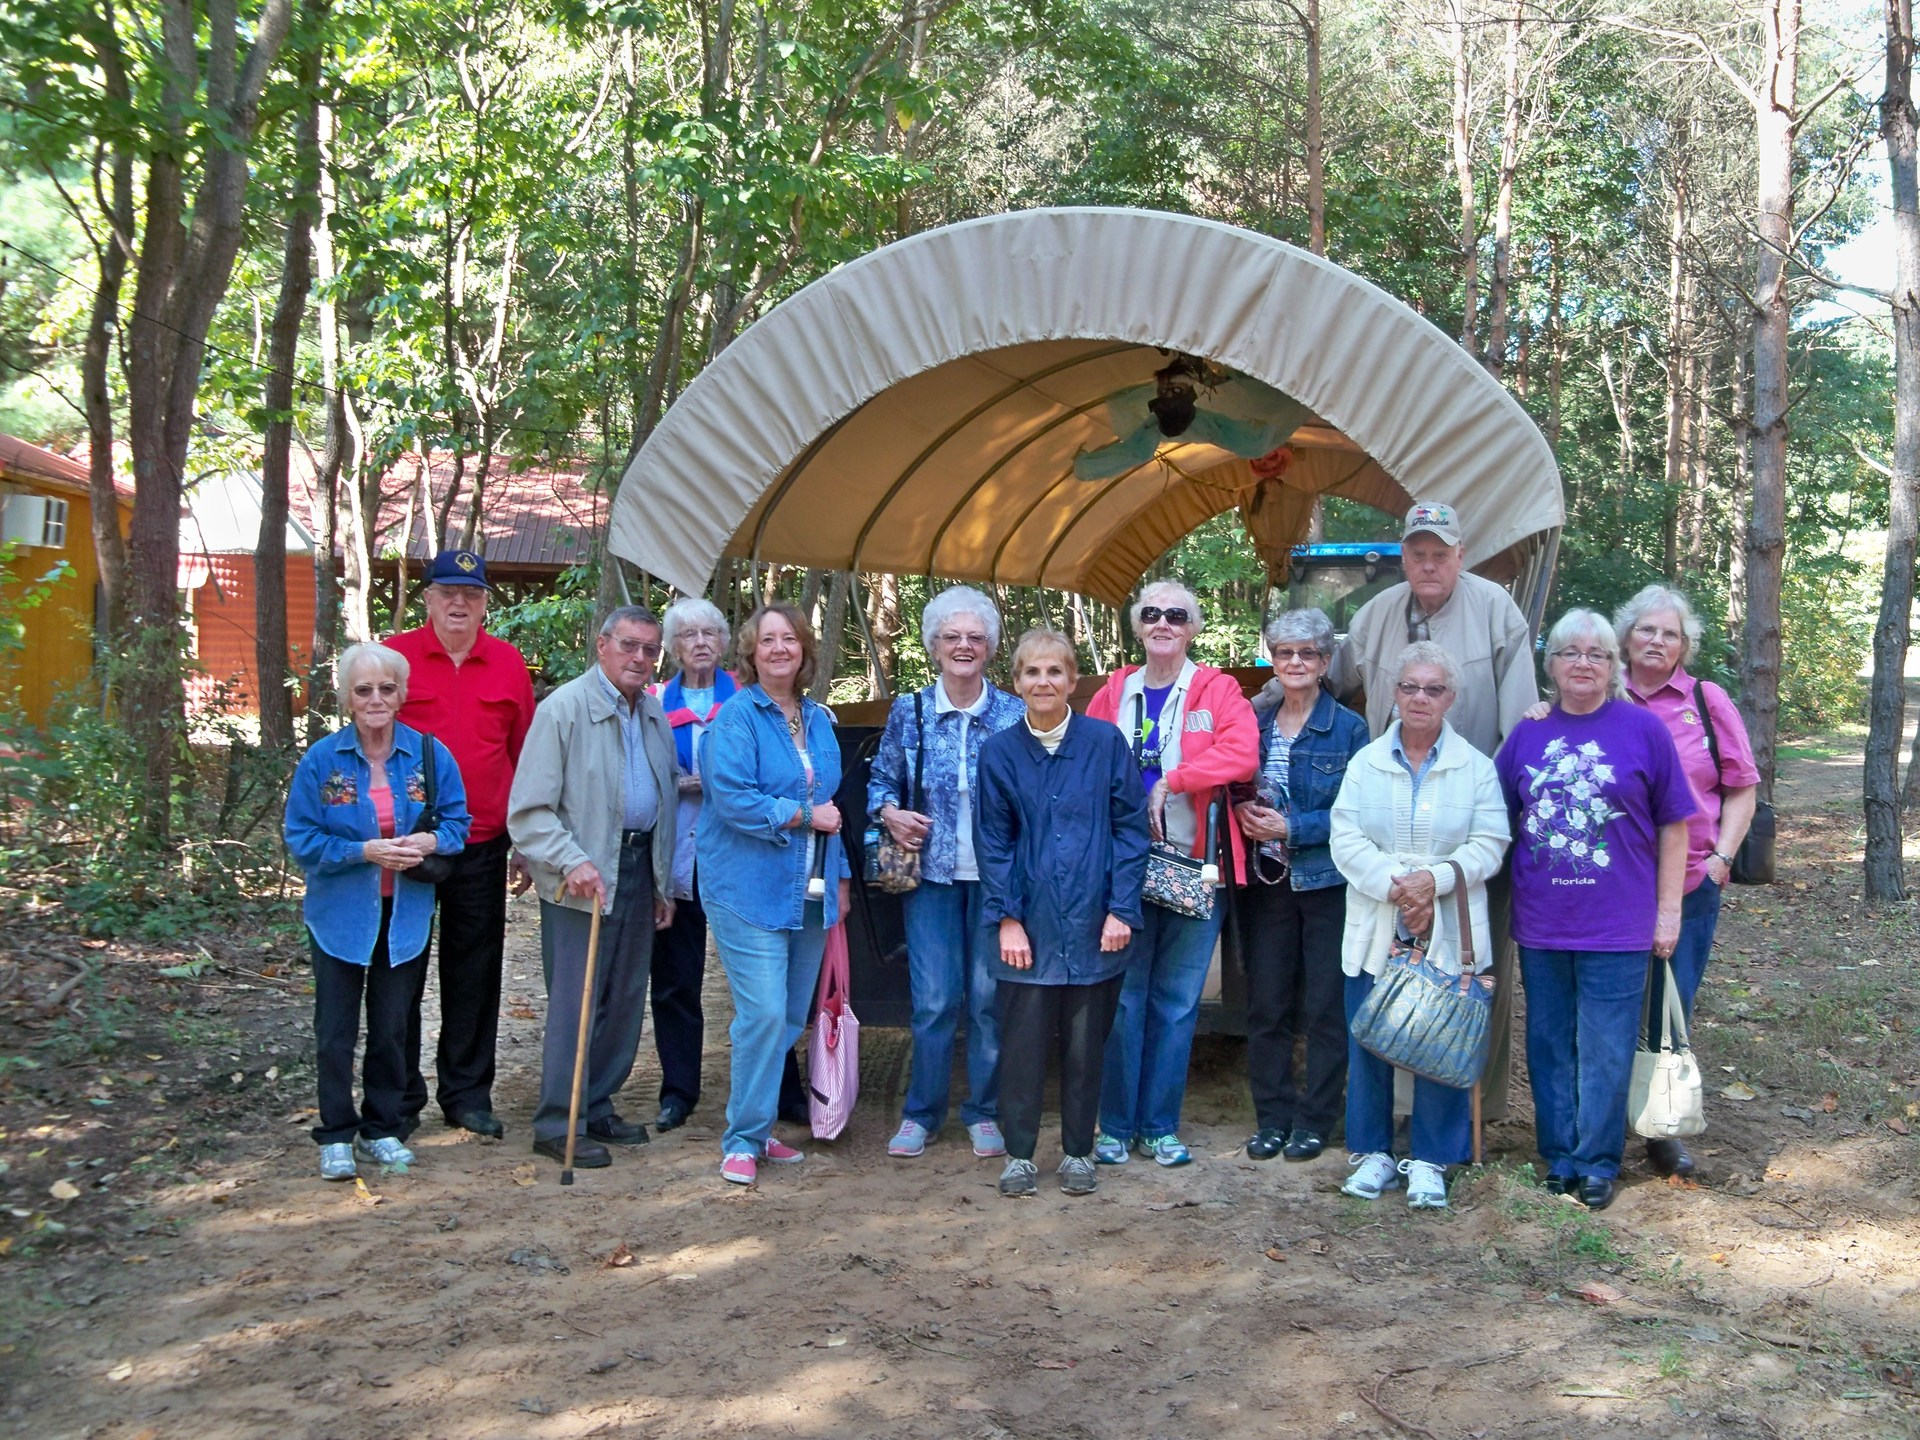 Seniors take a field trip to Stokes Homestead Farm Market and pose in front of their archway.